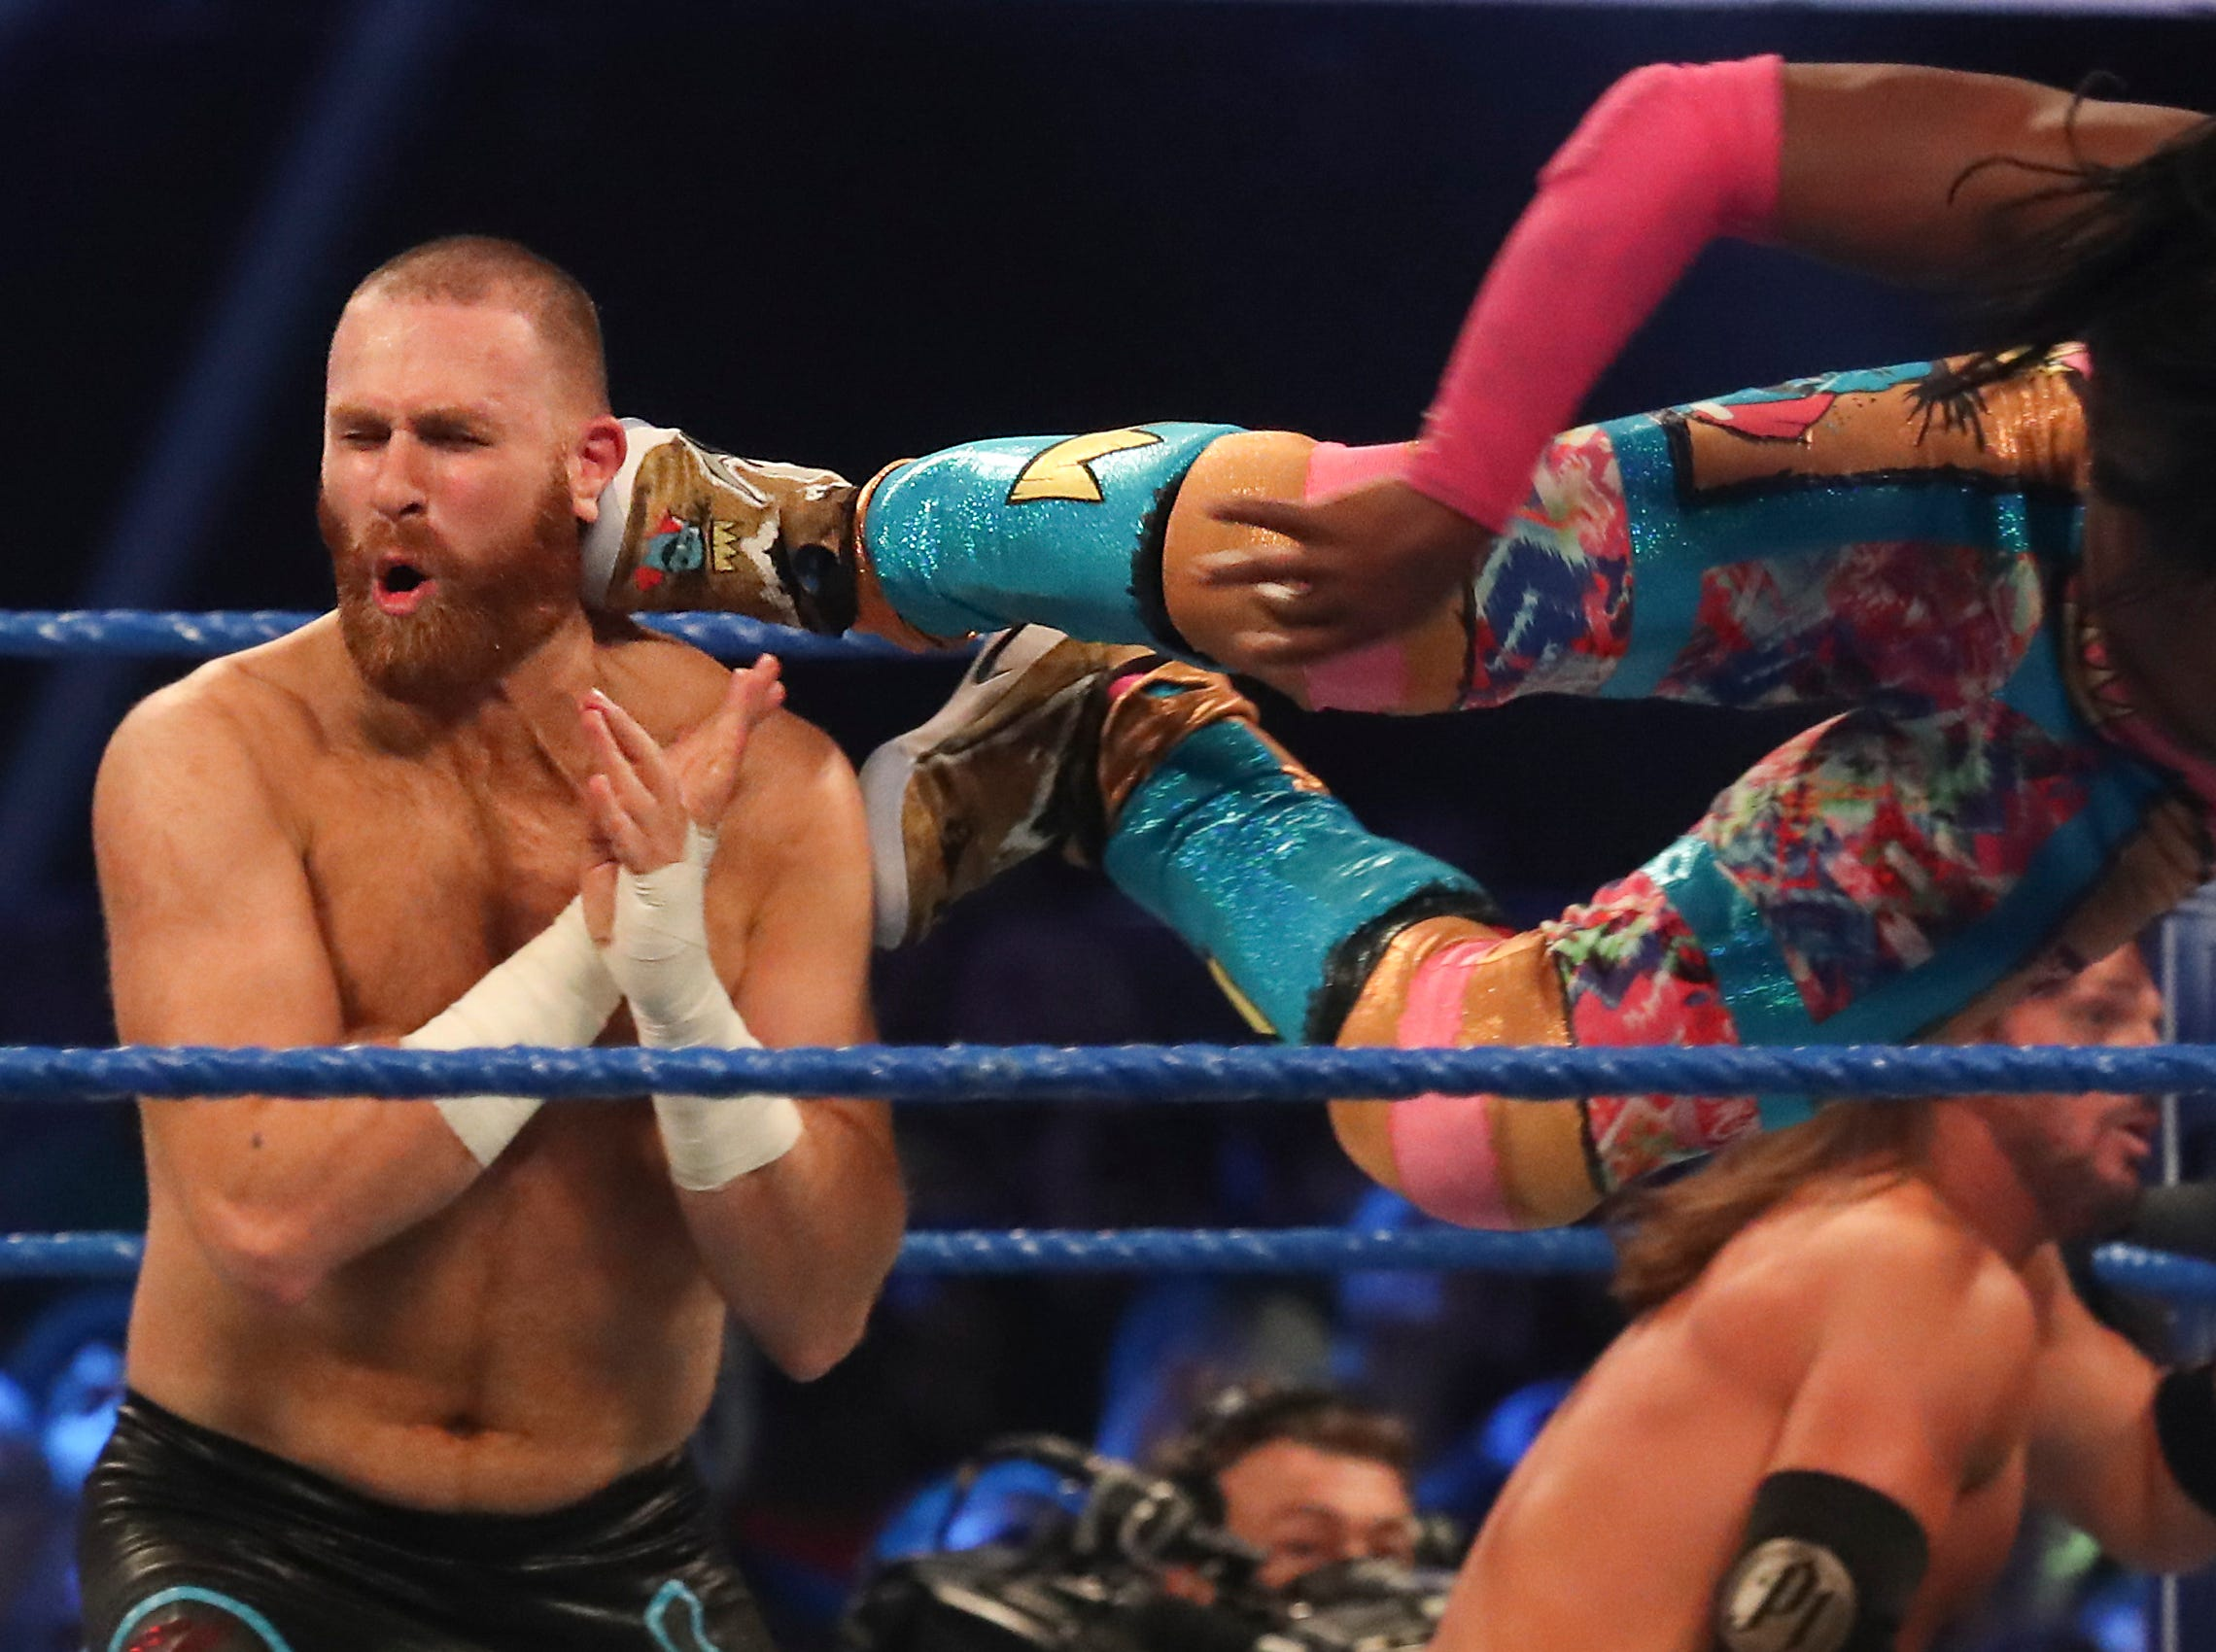 Sami Zayn takes a kick to the head from Kofi Kingston during WWE Smackdown on May 7.